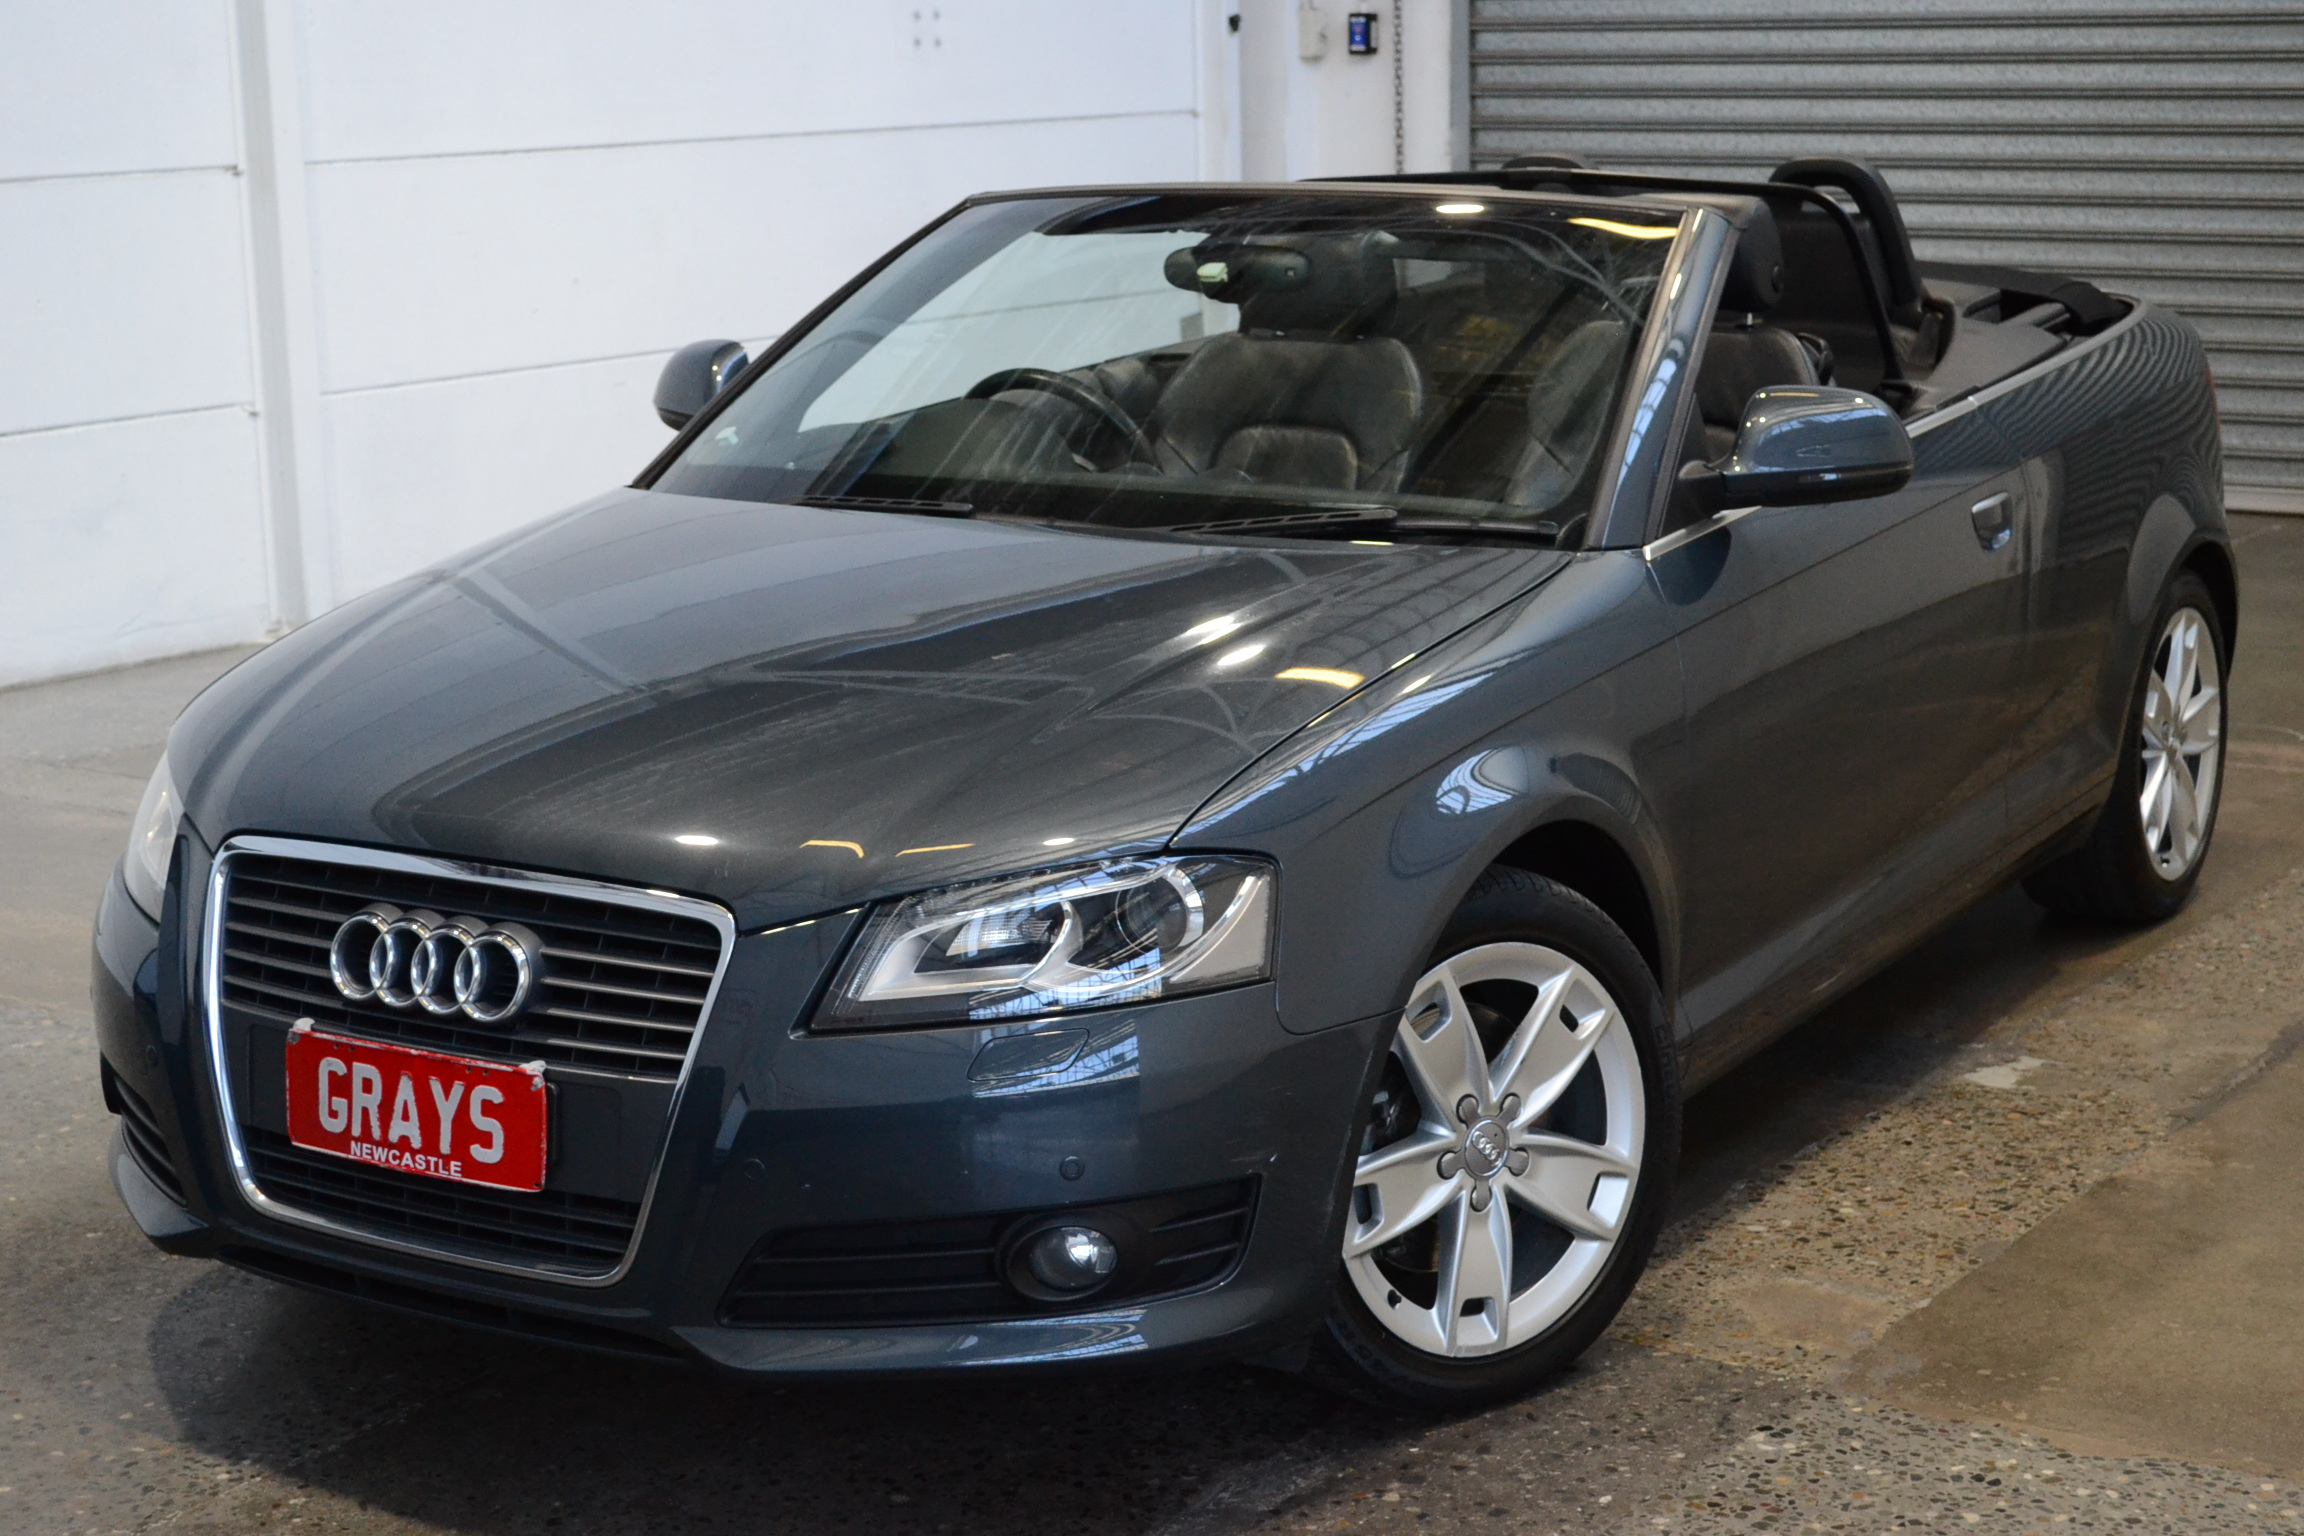 2010 Audi A3 2.0 TFSI Ambition 8P Manual Convertible